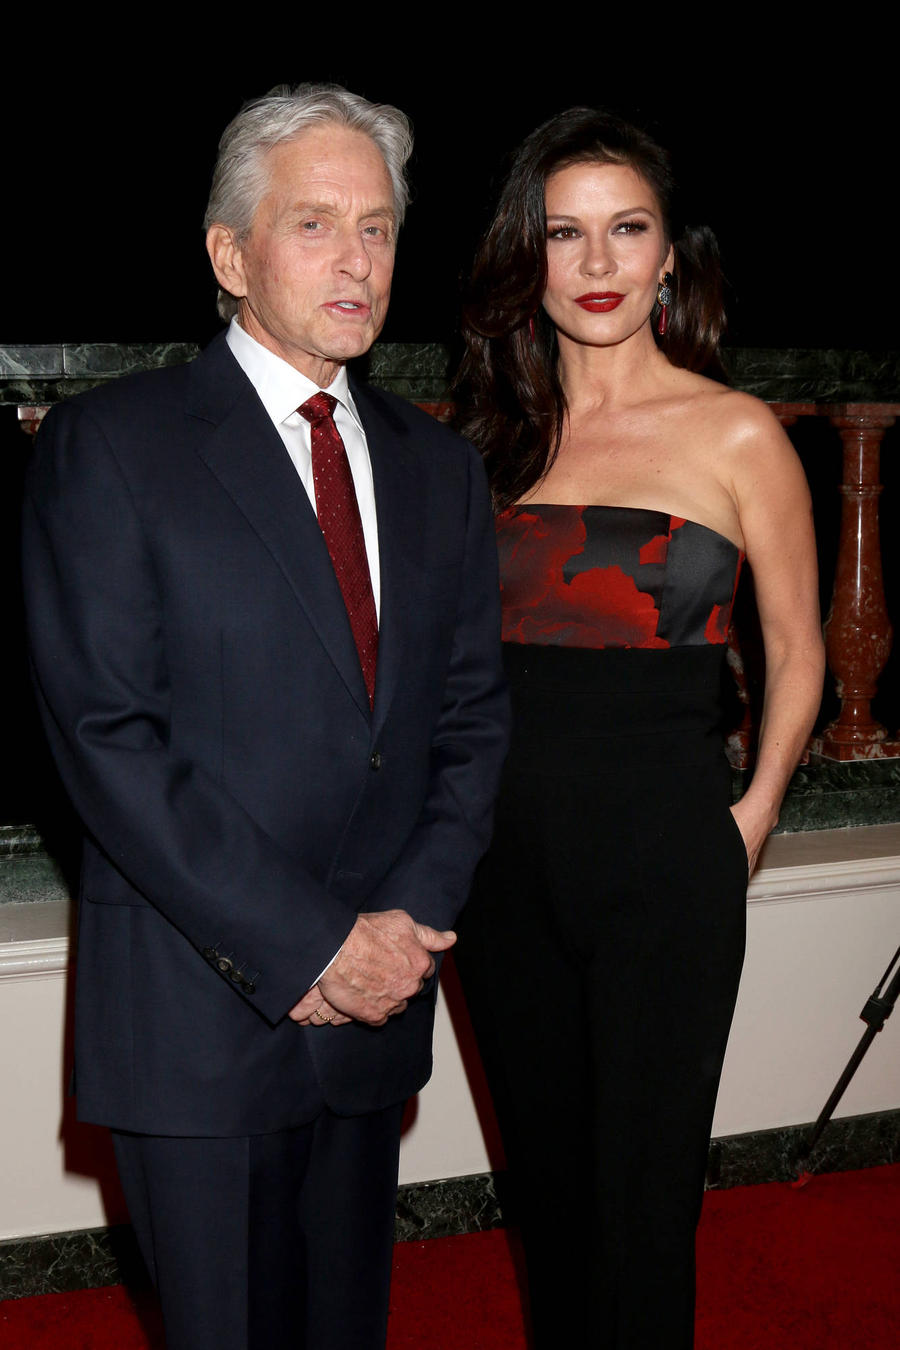 Michael Douglas And Catherine Zeta-jones Joke About Age Gap